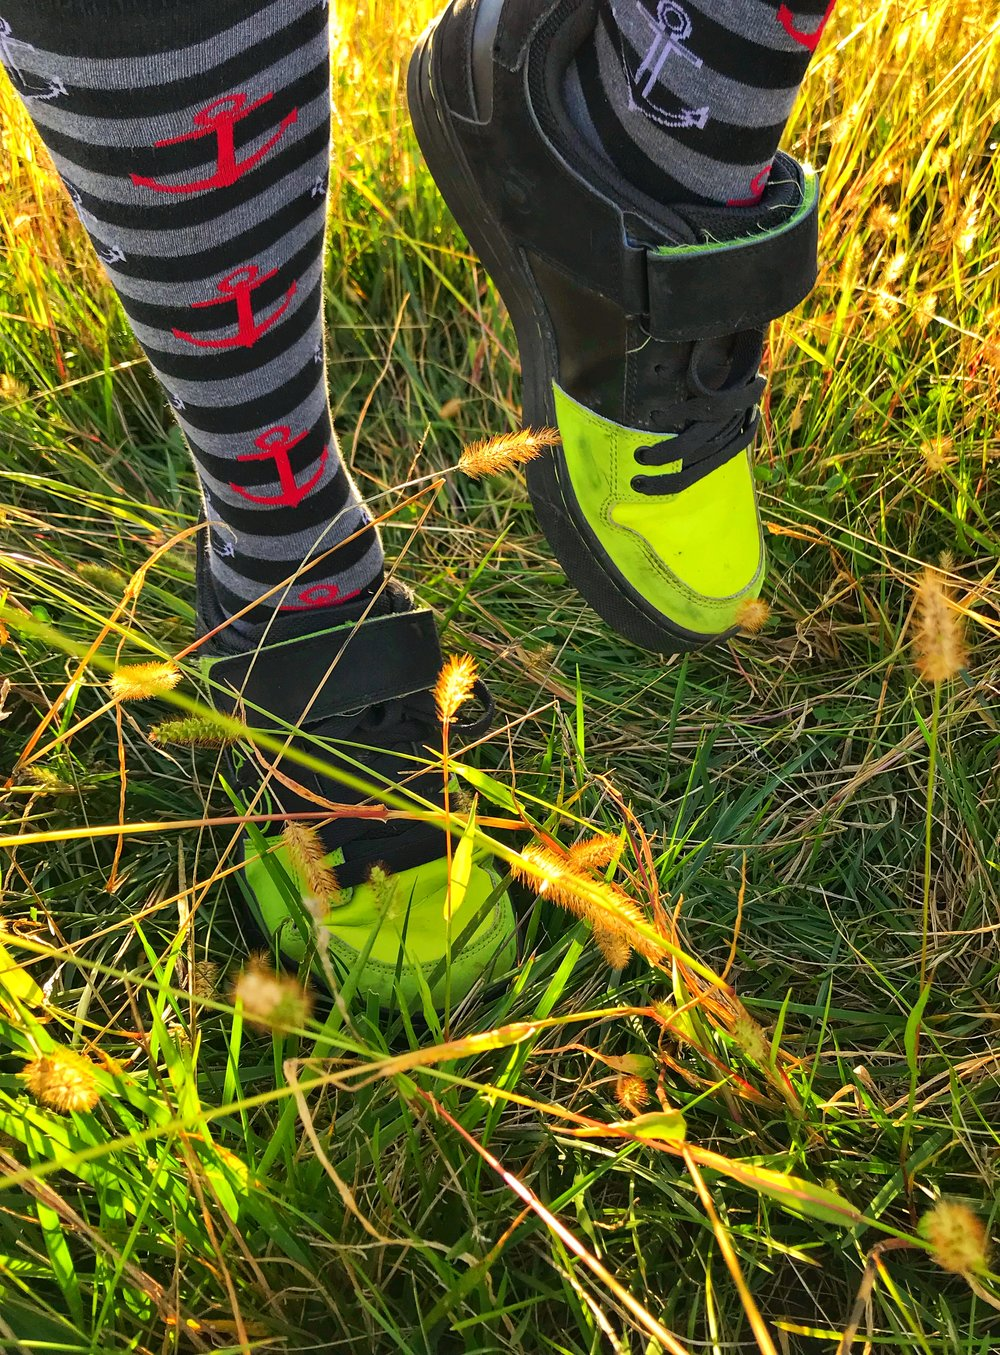 Tall nautical socks while walking is tall fall grass and sun setting on the perfect fall riding day.